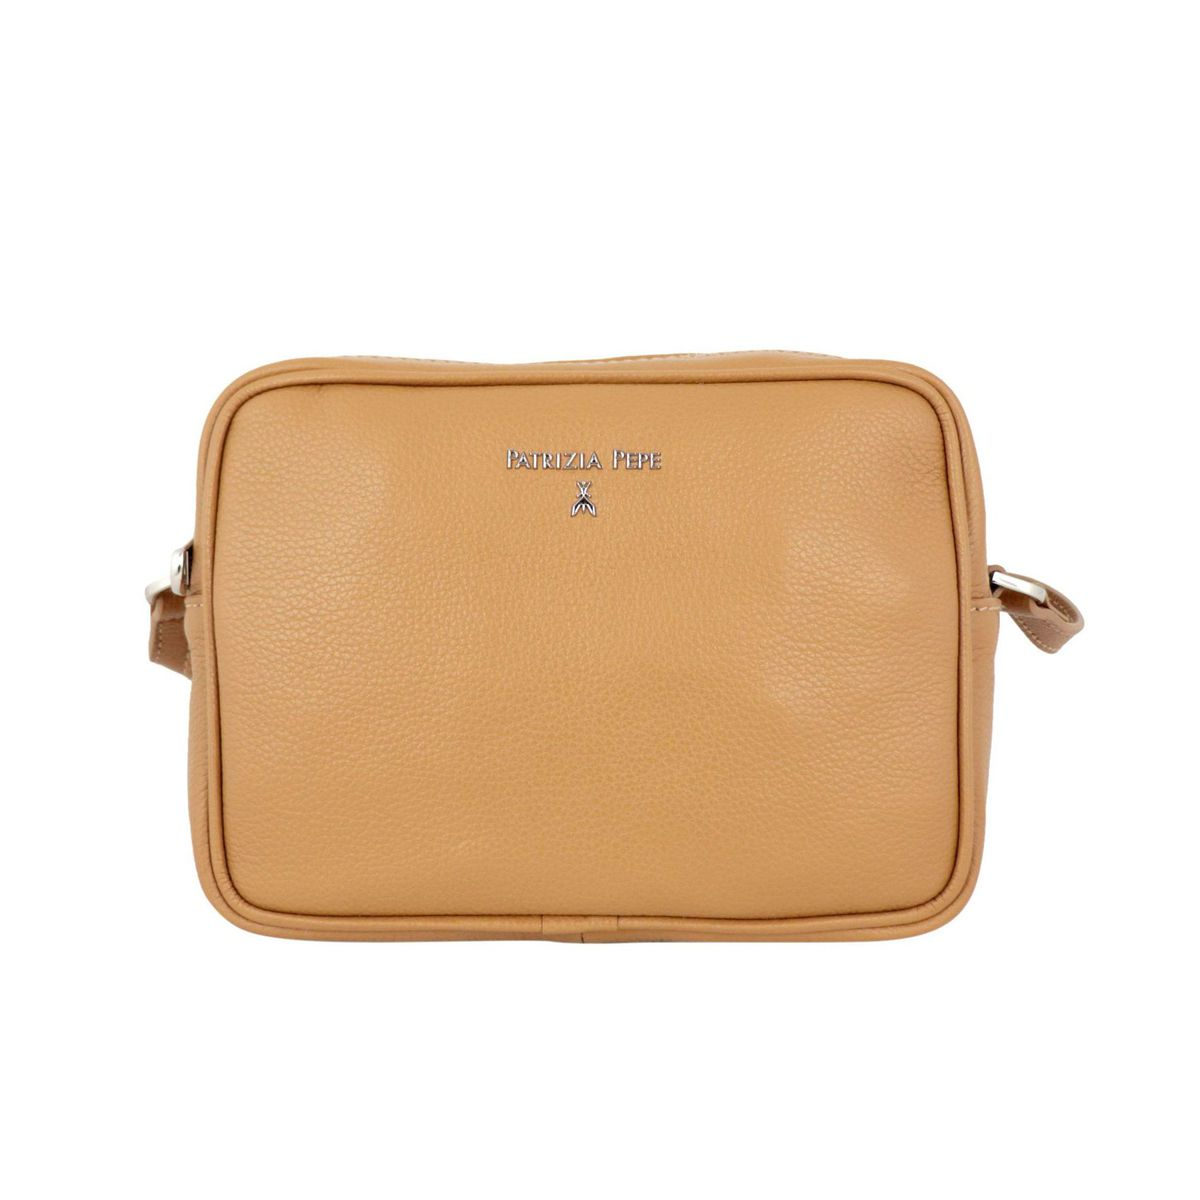 Small shoulder bag in textured leather with embossed metal logo Leather Patrizia Pepe